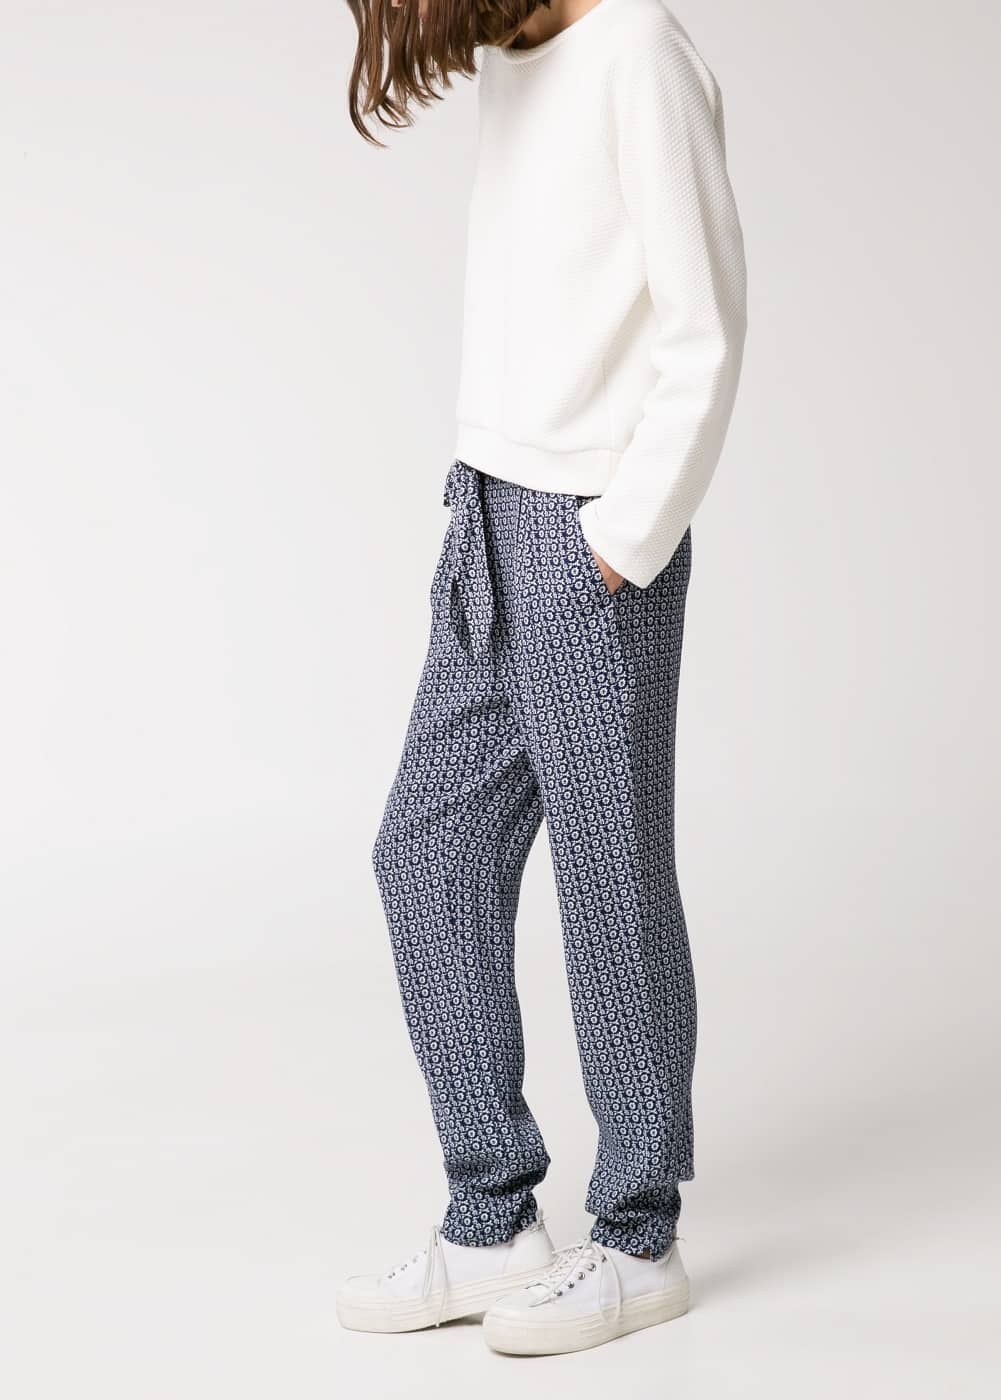 Bow printed trousers